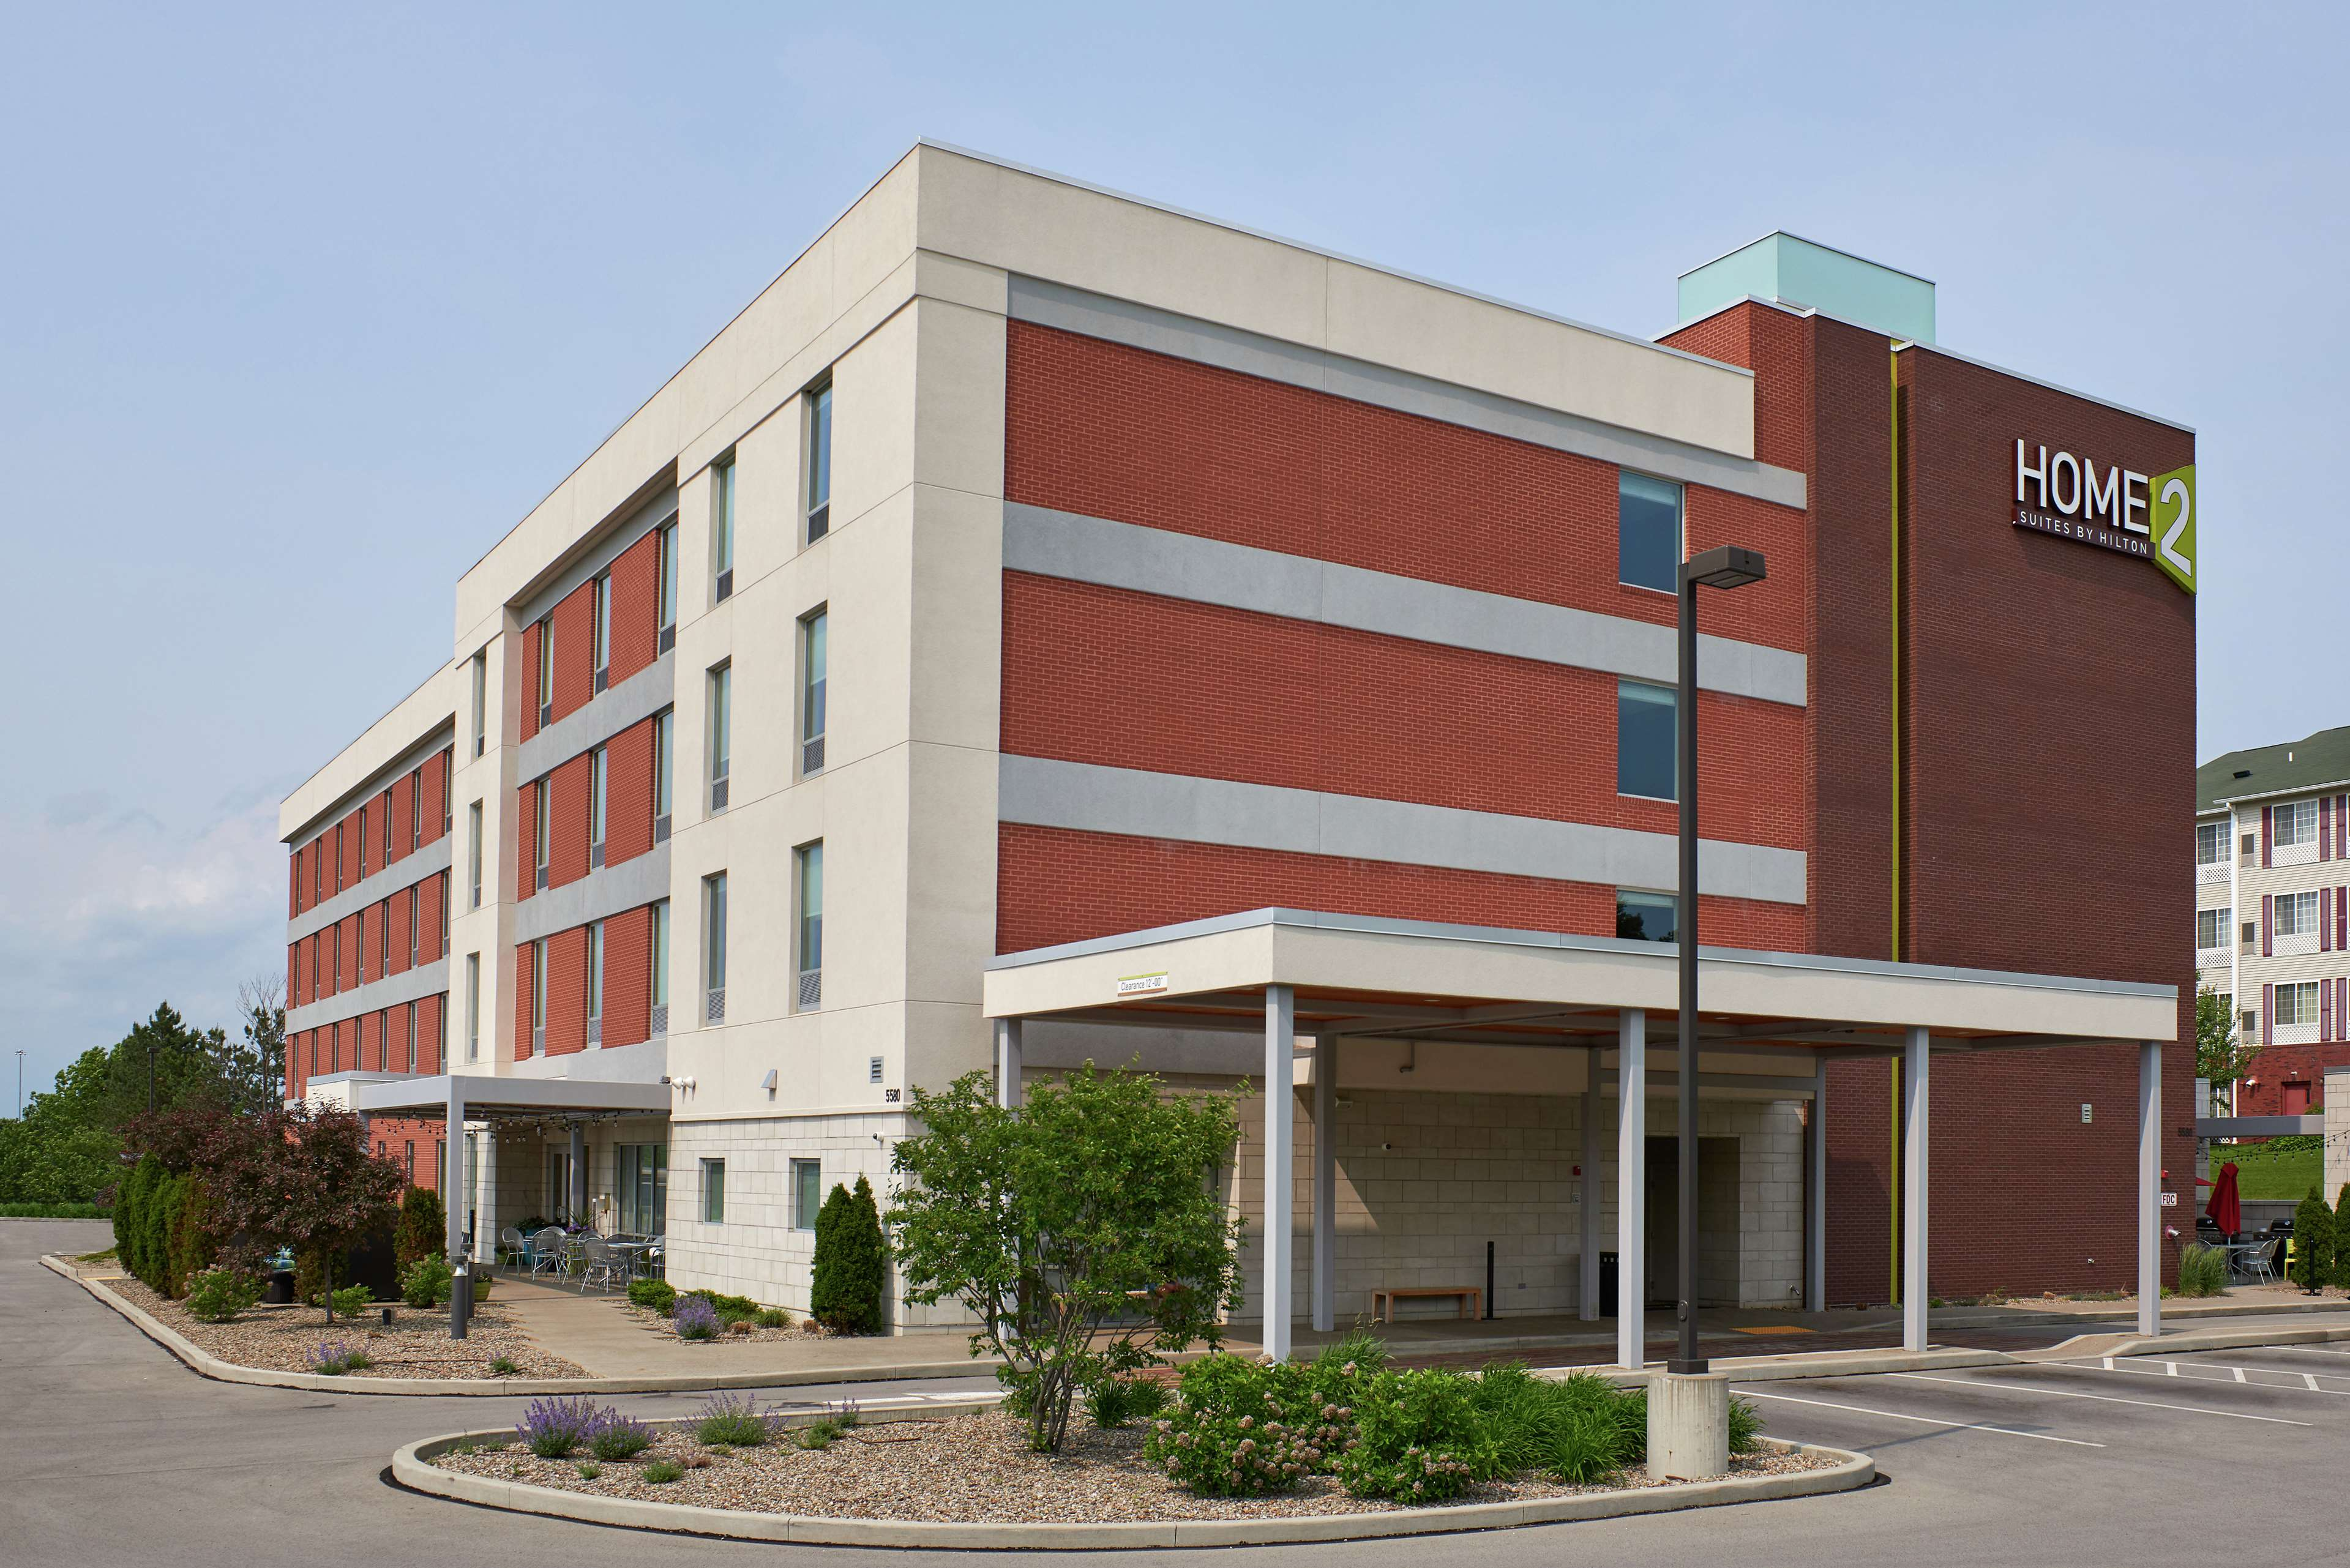 Home2 Suites By Hilton Youngstown West - Austintown